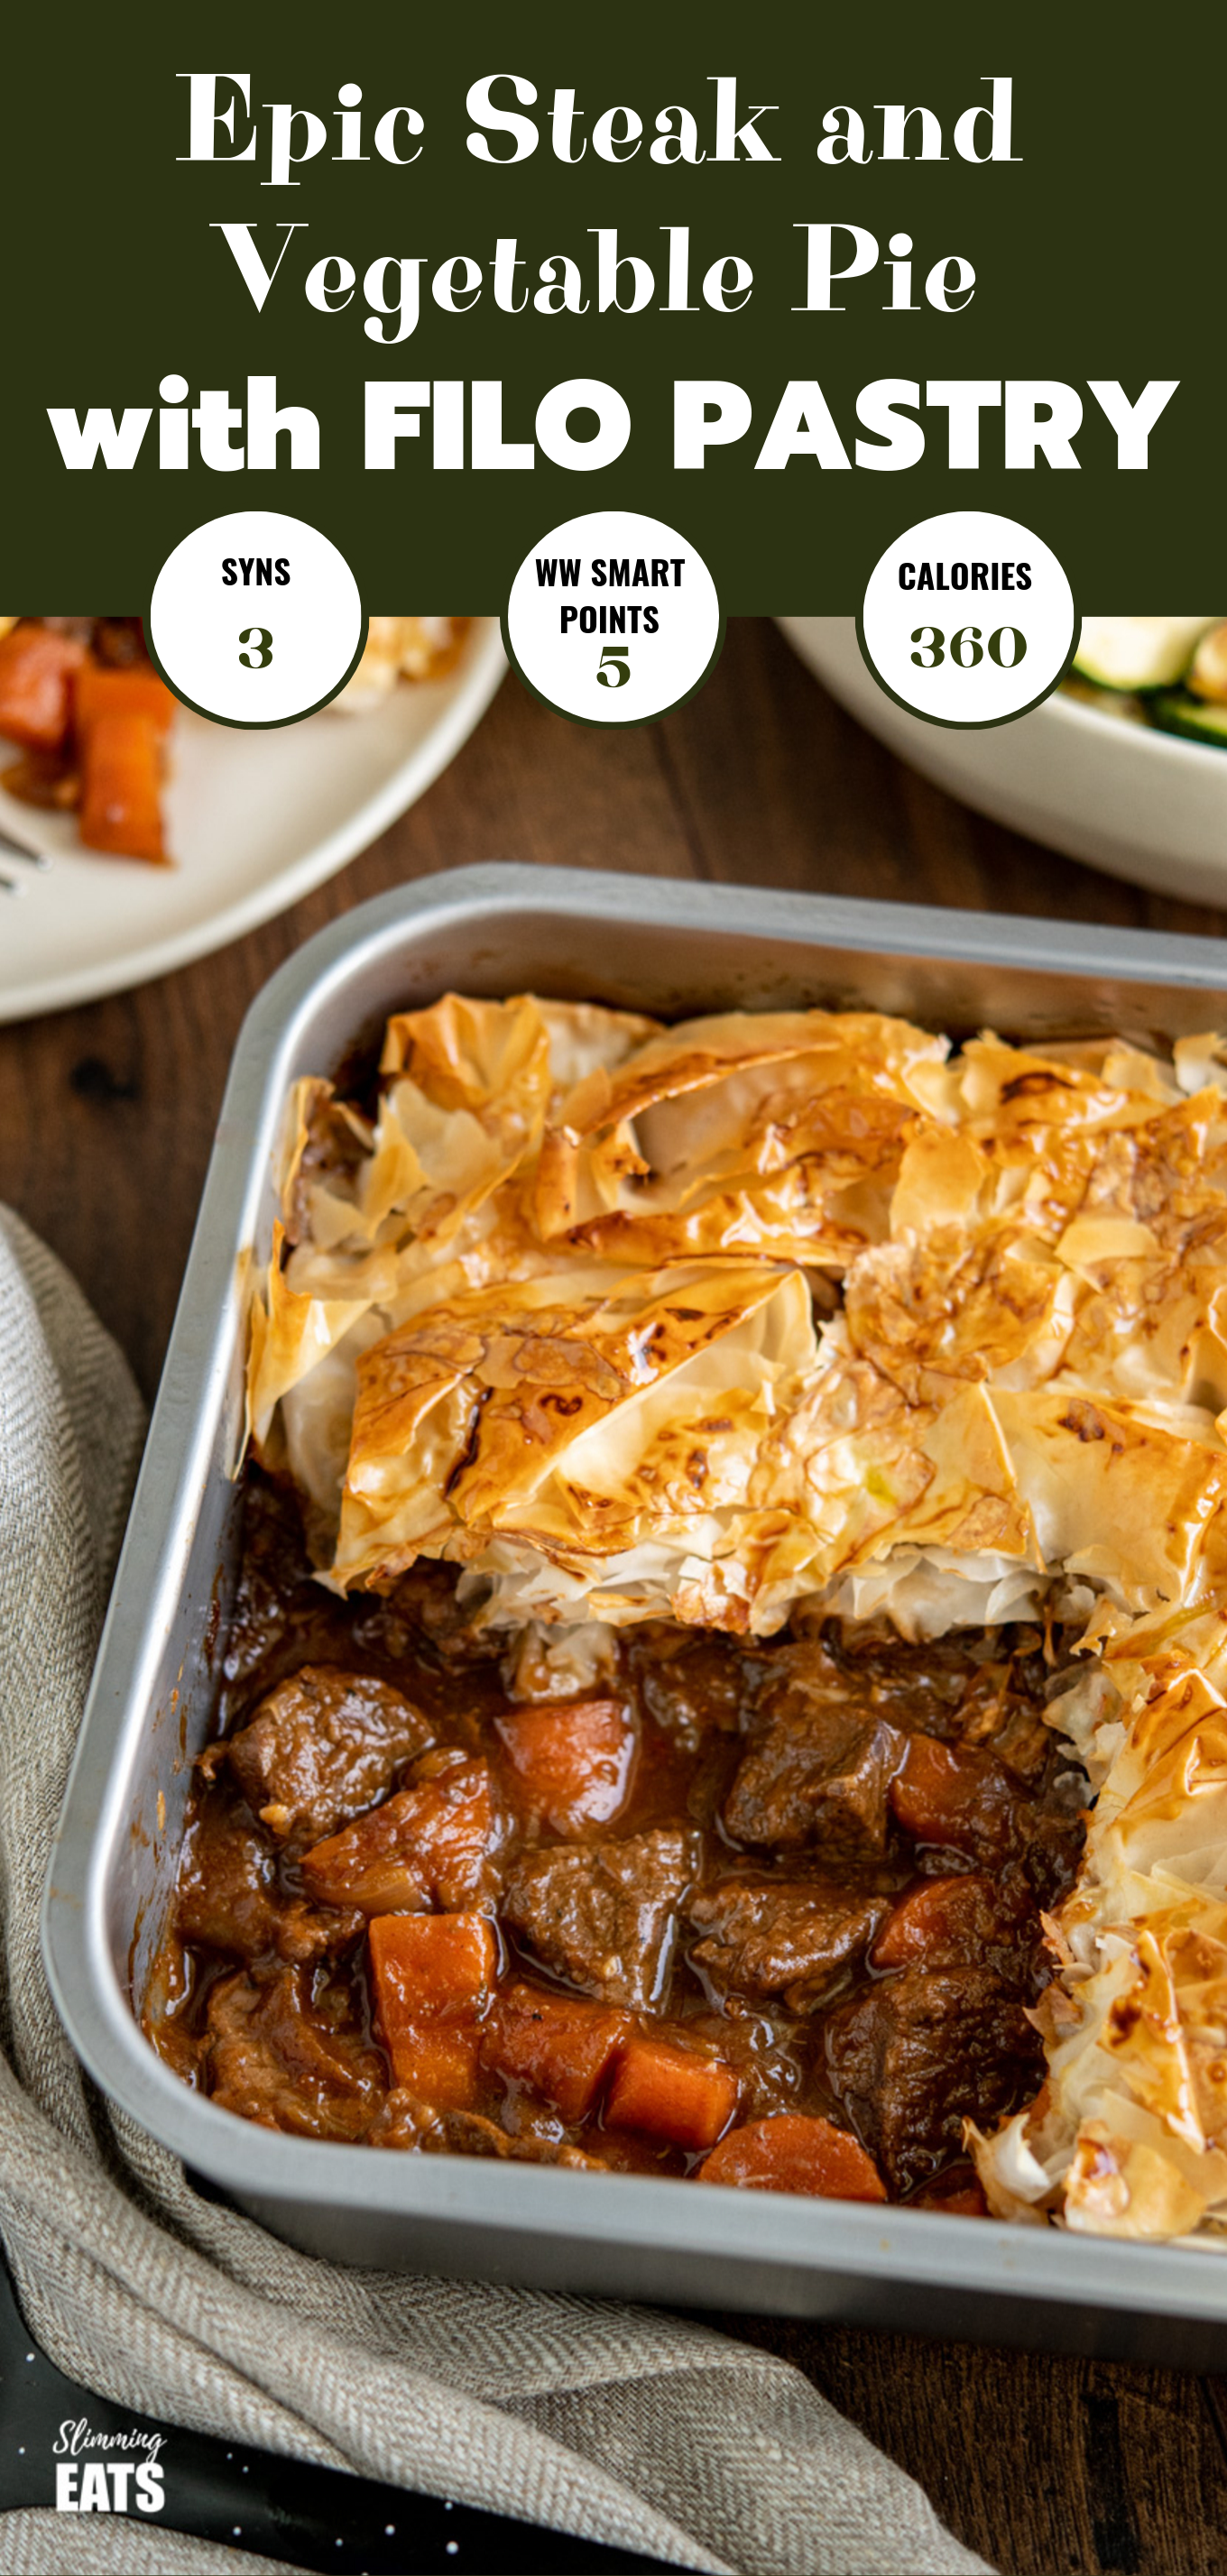 epic steak and vegetable pie featured pin image